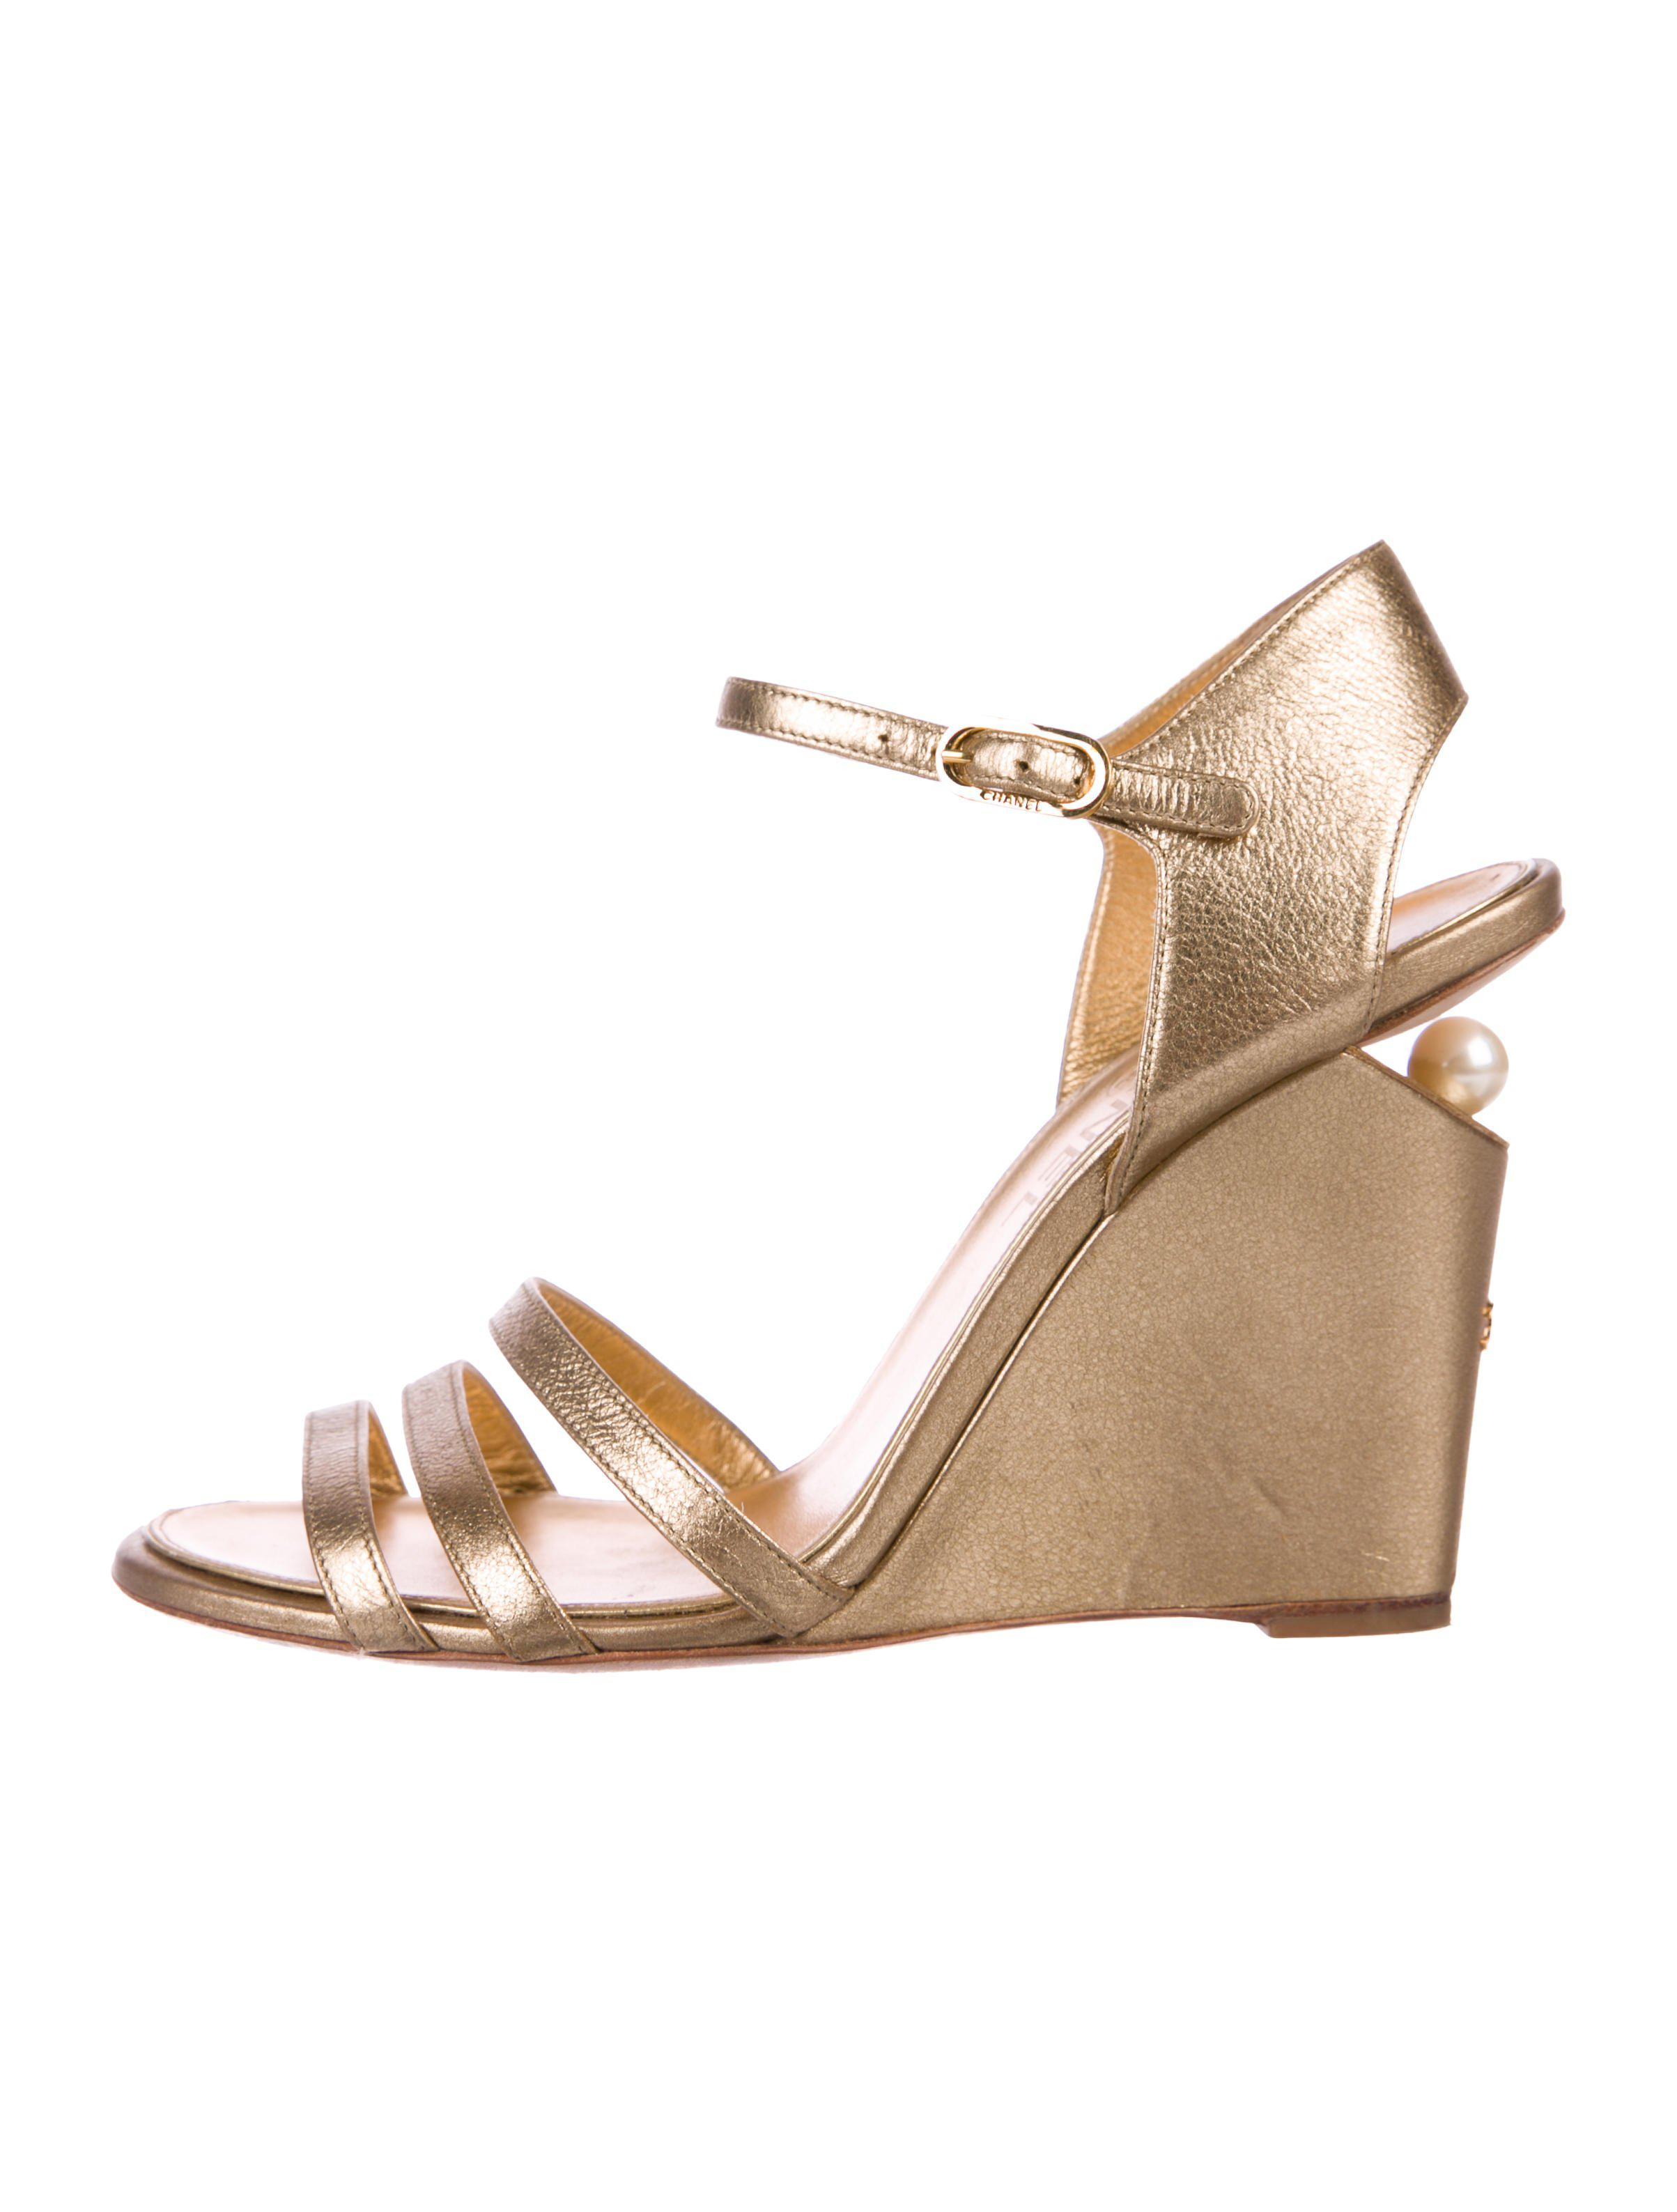 44ca74cb7ce Lyst - Chanel Embellished Wedge Sandals Gold in Metallic